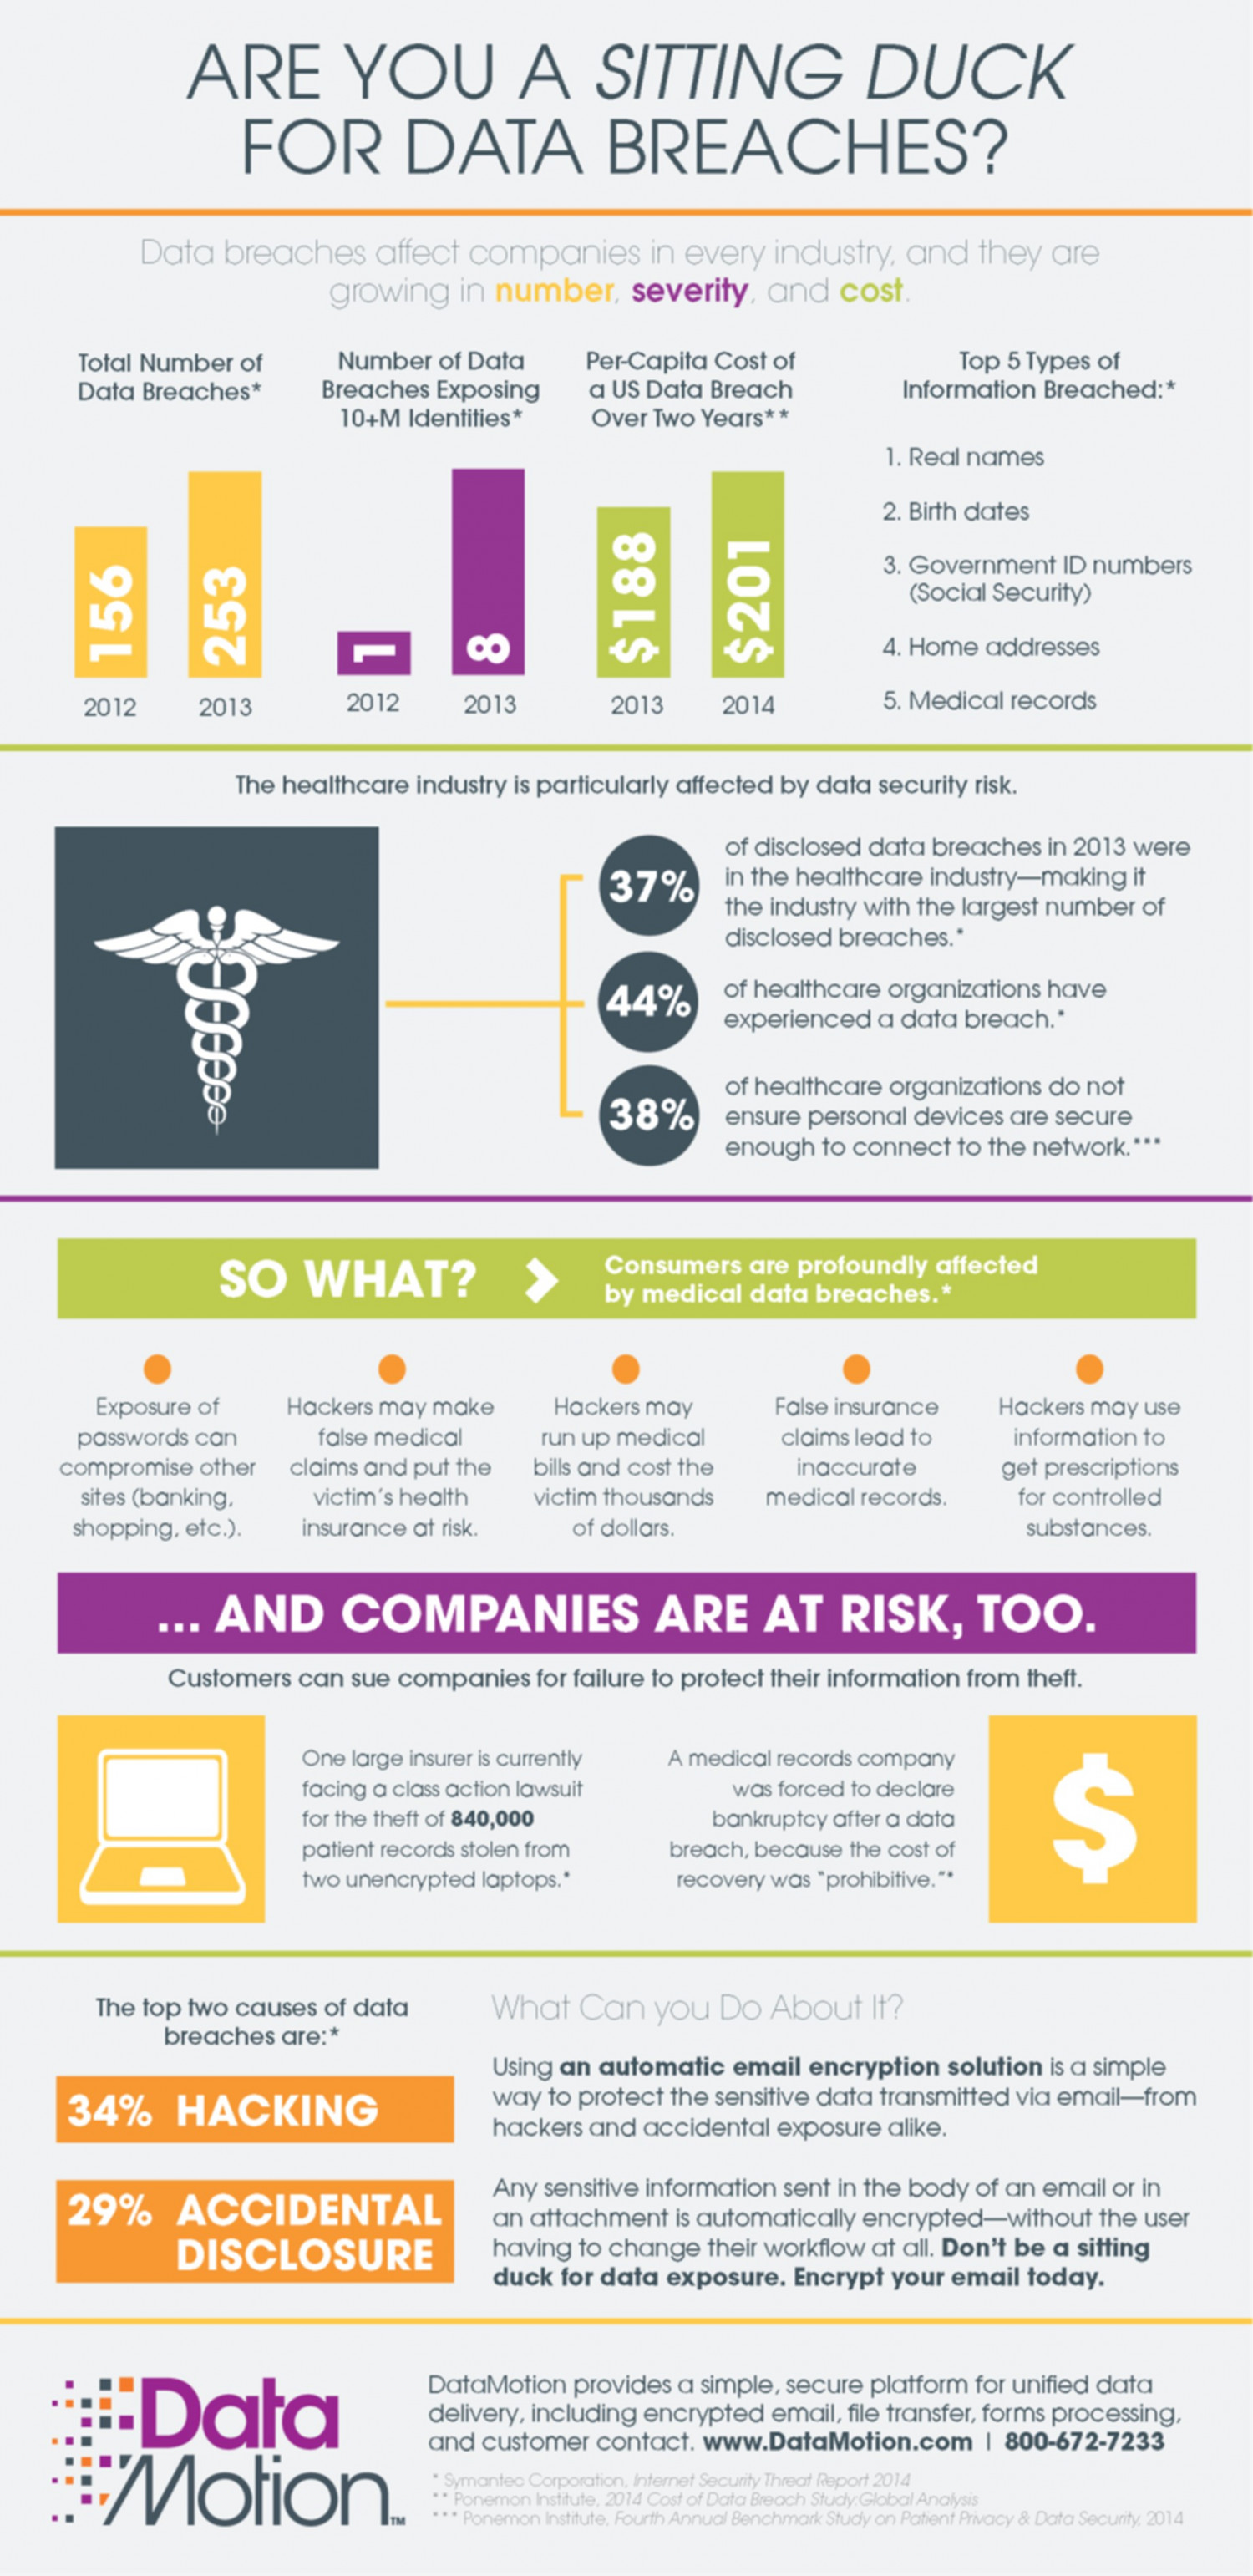 Are You a Sitting Duck for Data Breaches? Infographic